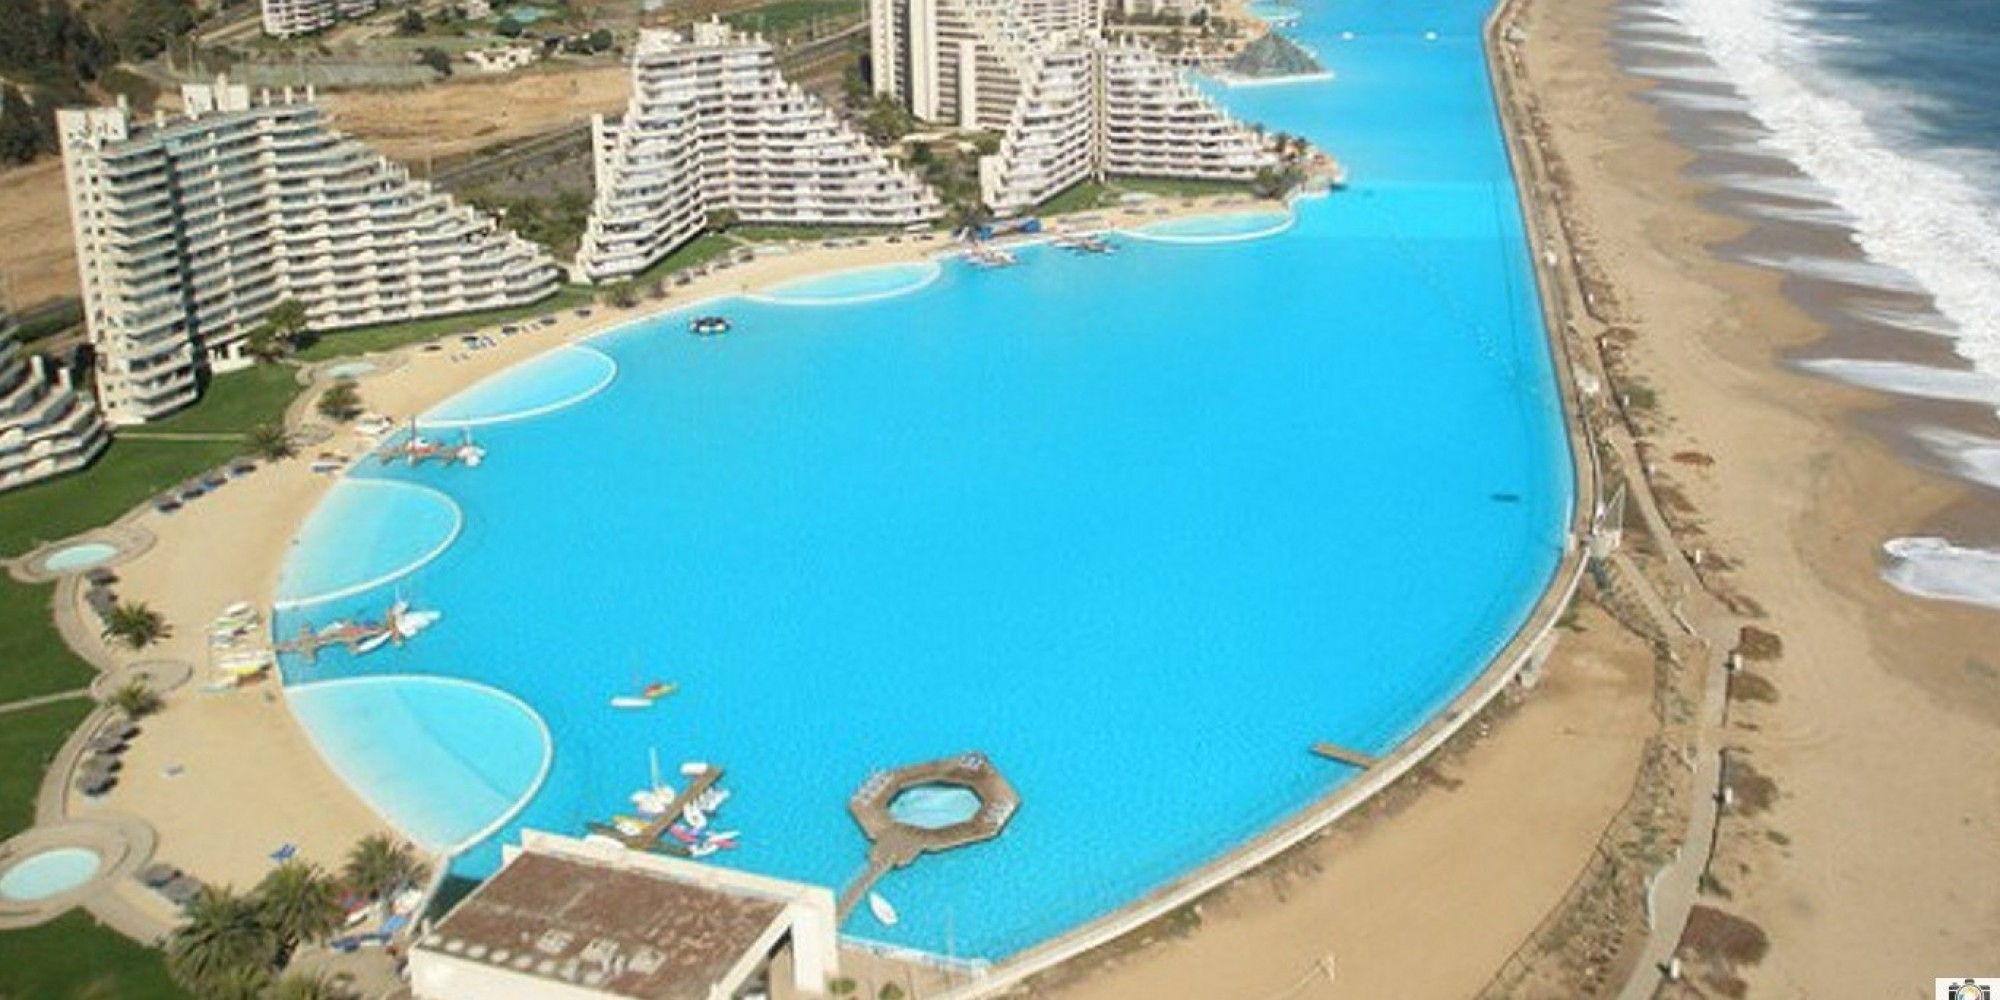 World 39 S Largest Outdoor Pool At Chile 39 S San Alfonso Del Mar Resort Photos Huffpost